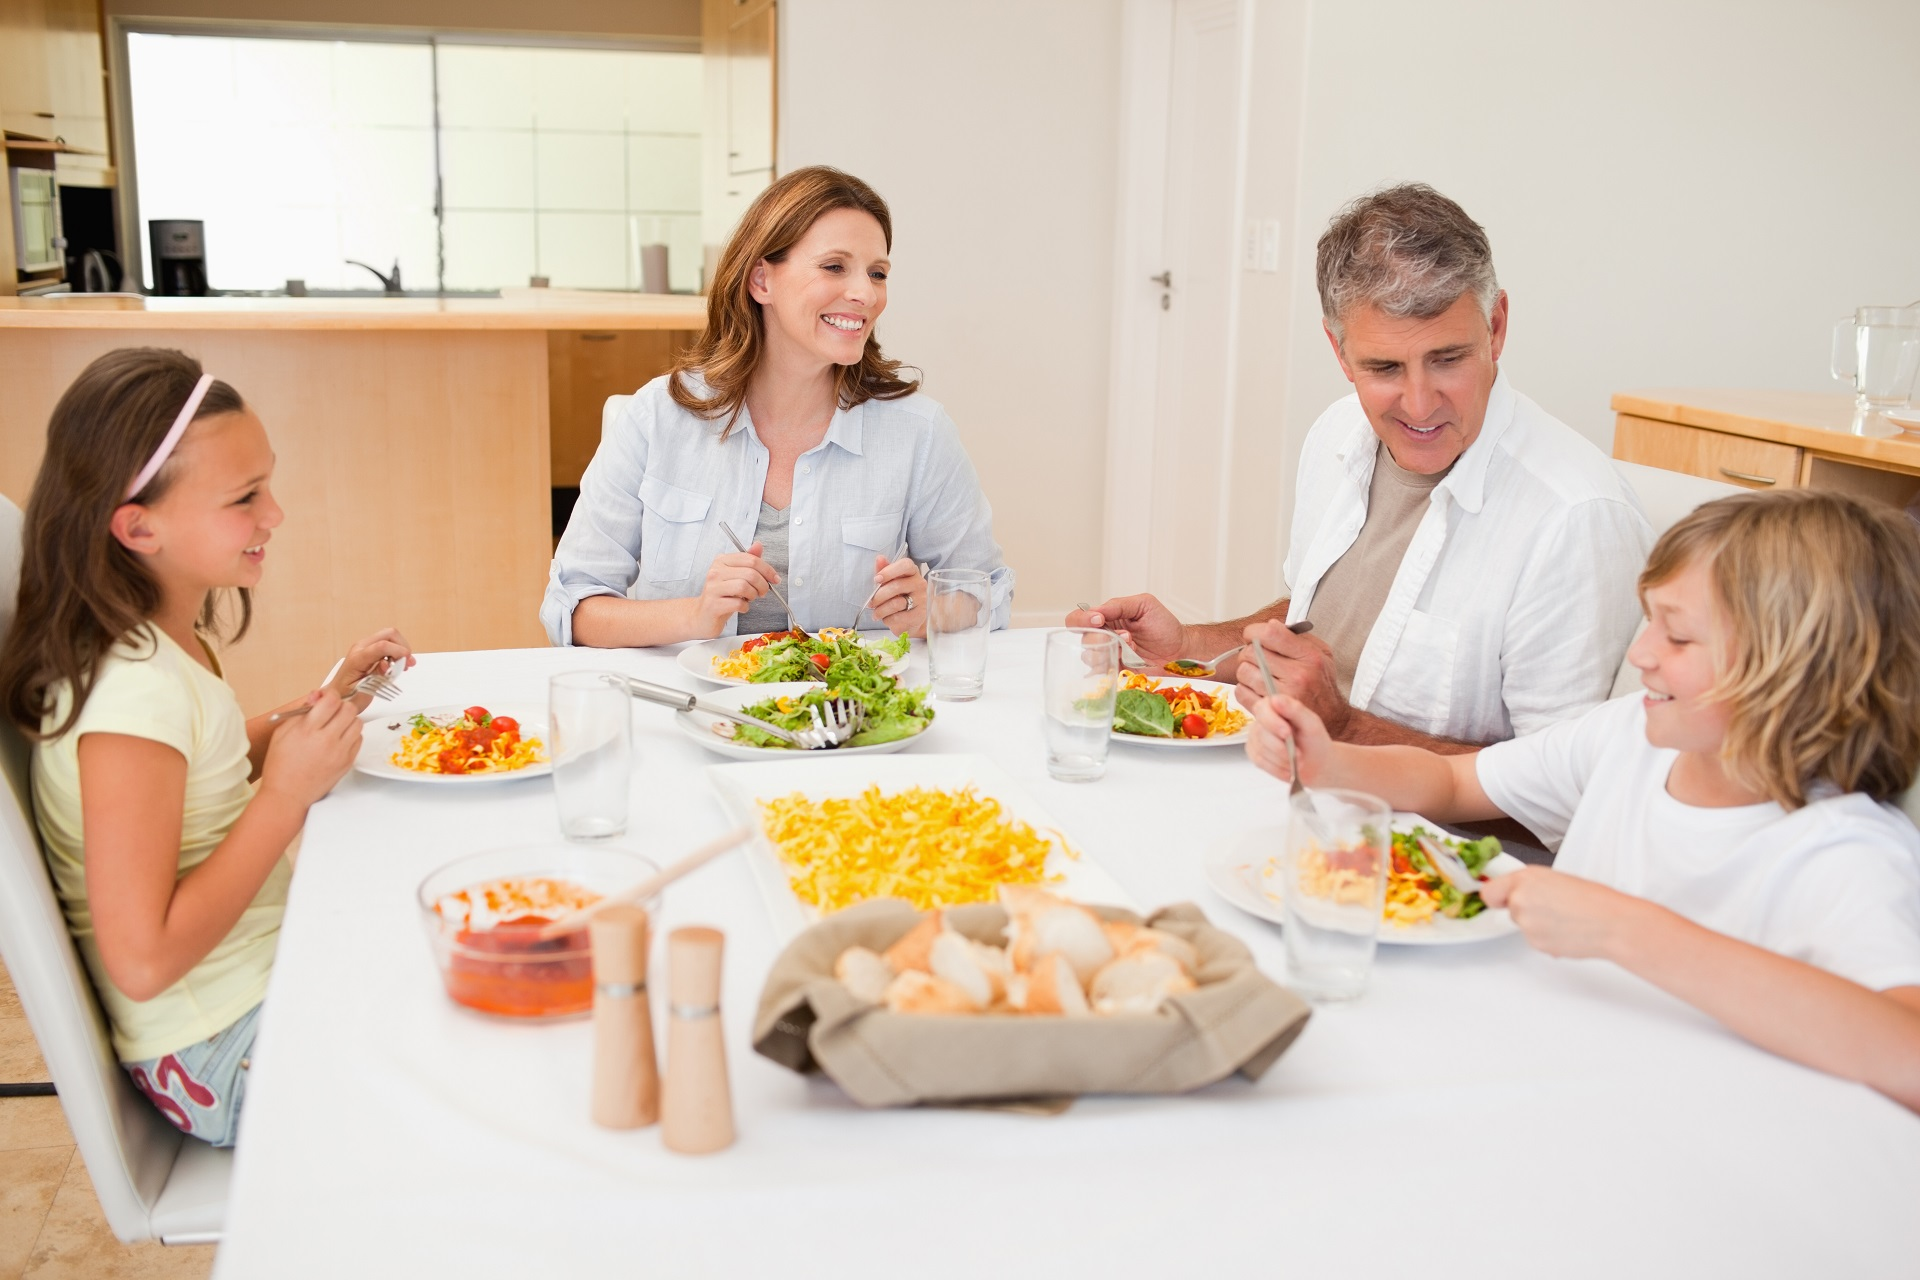 Eat Together Family Health And Registered Massage Health